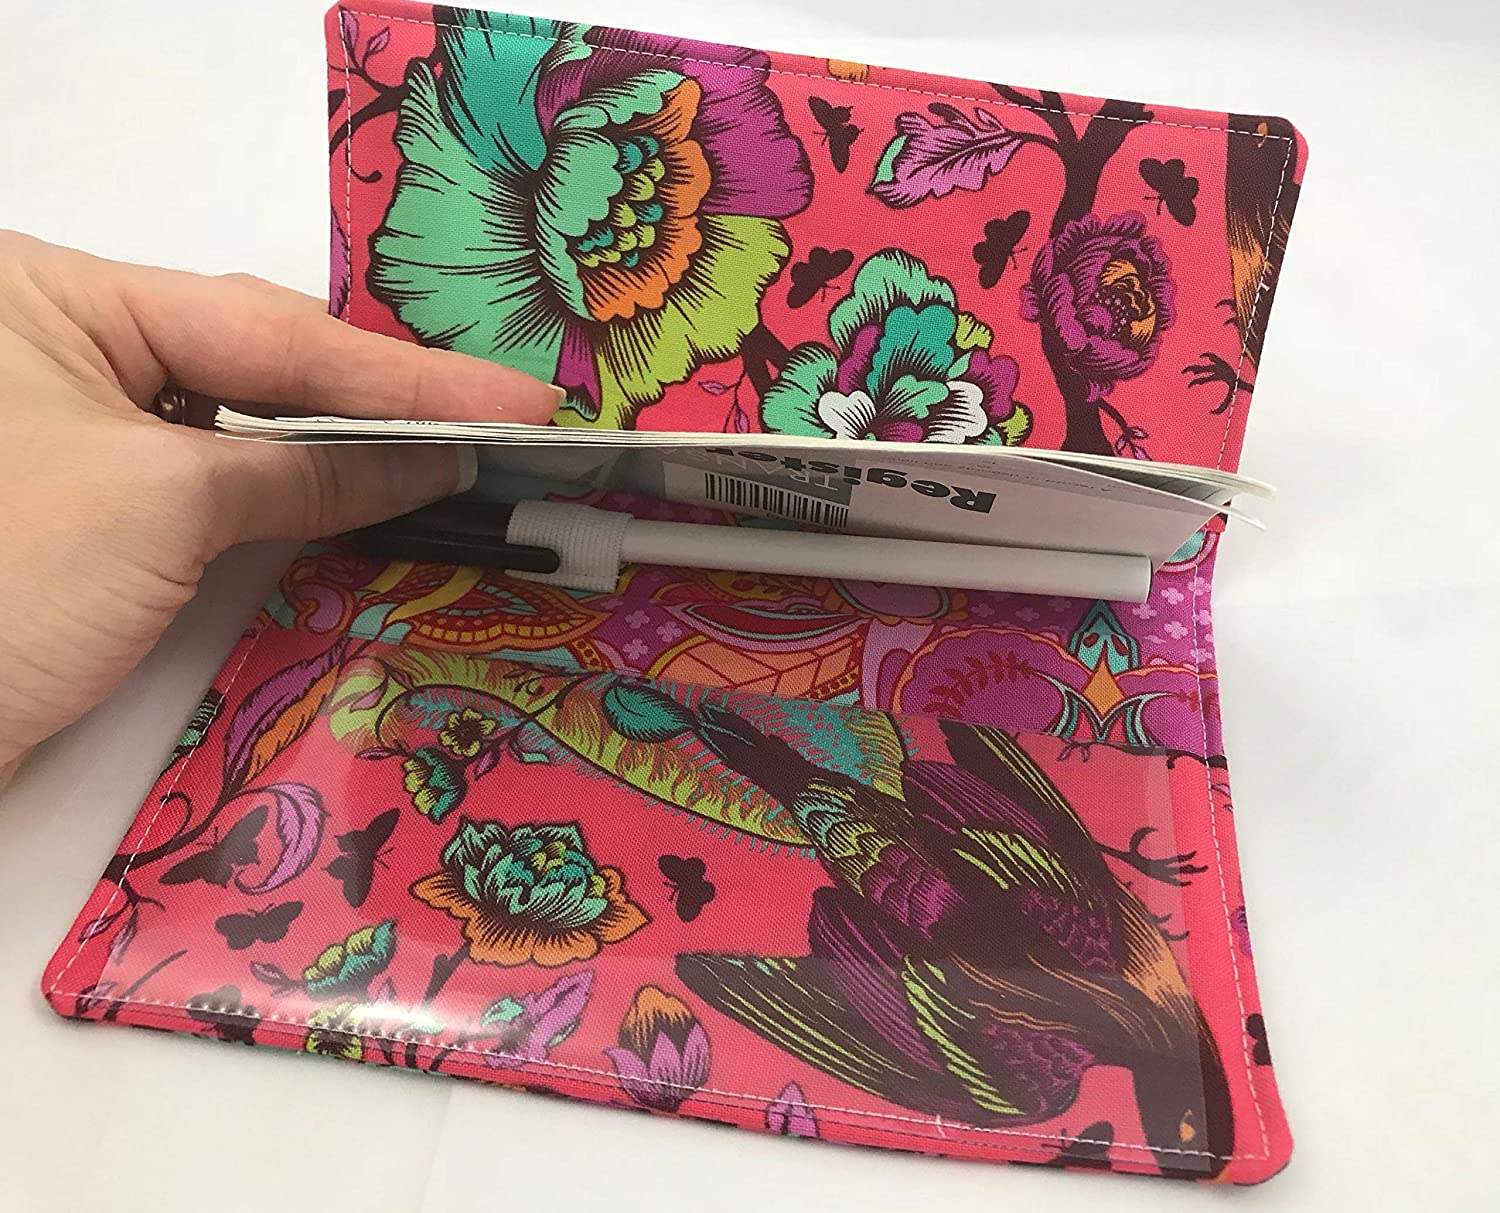 Tail Feathers Poppy Red Duplicate Checkbook Cover Register with Pen Holder